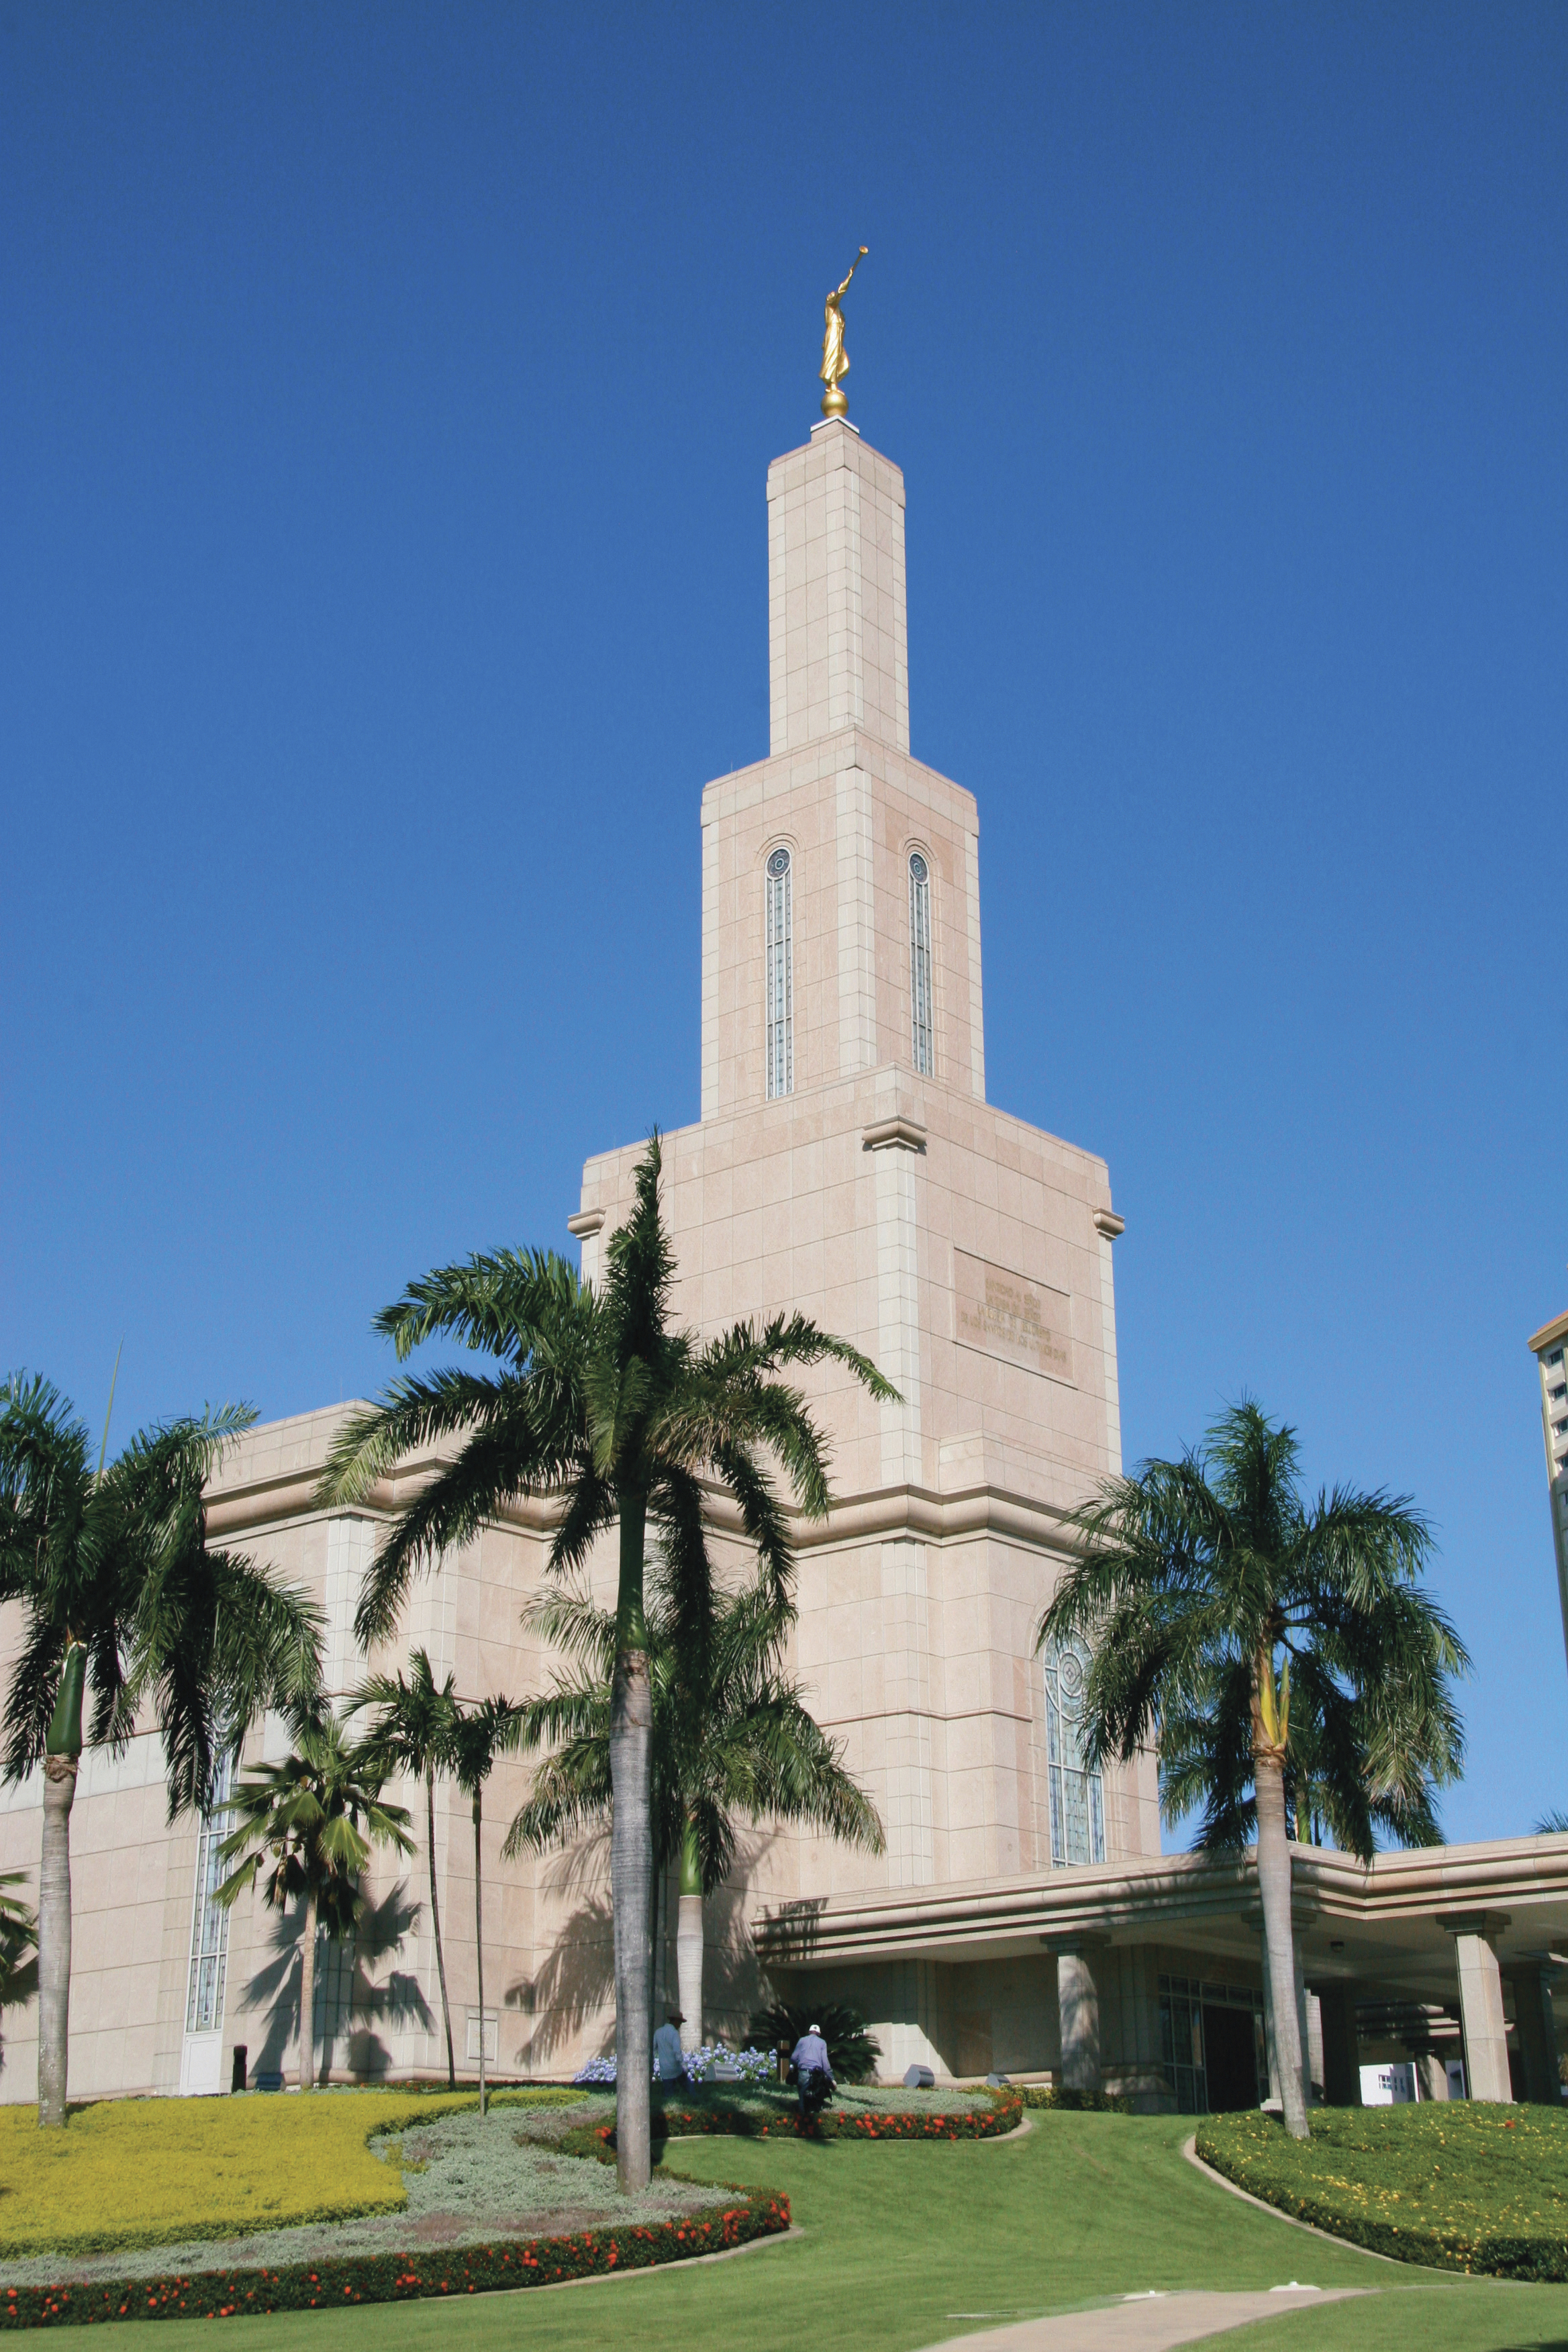 The Santo Domingo Dominican Republic Temple side view, including the entrance and scenery.